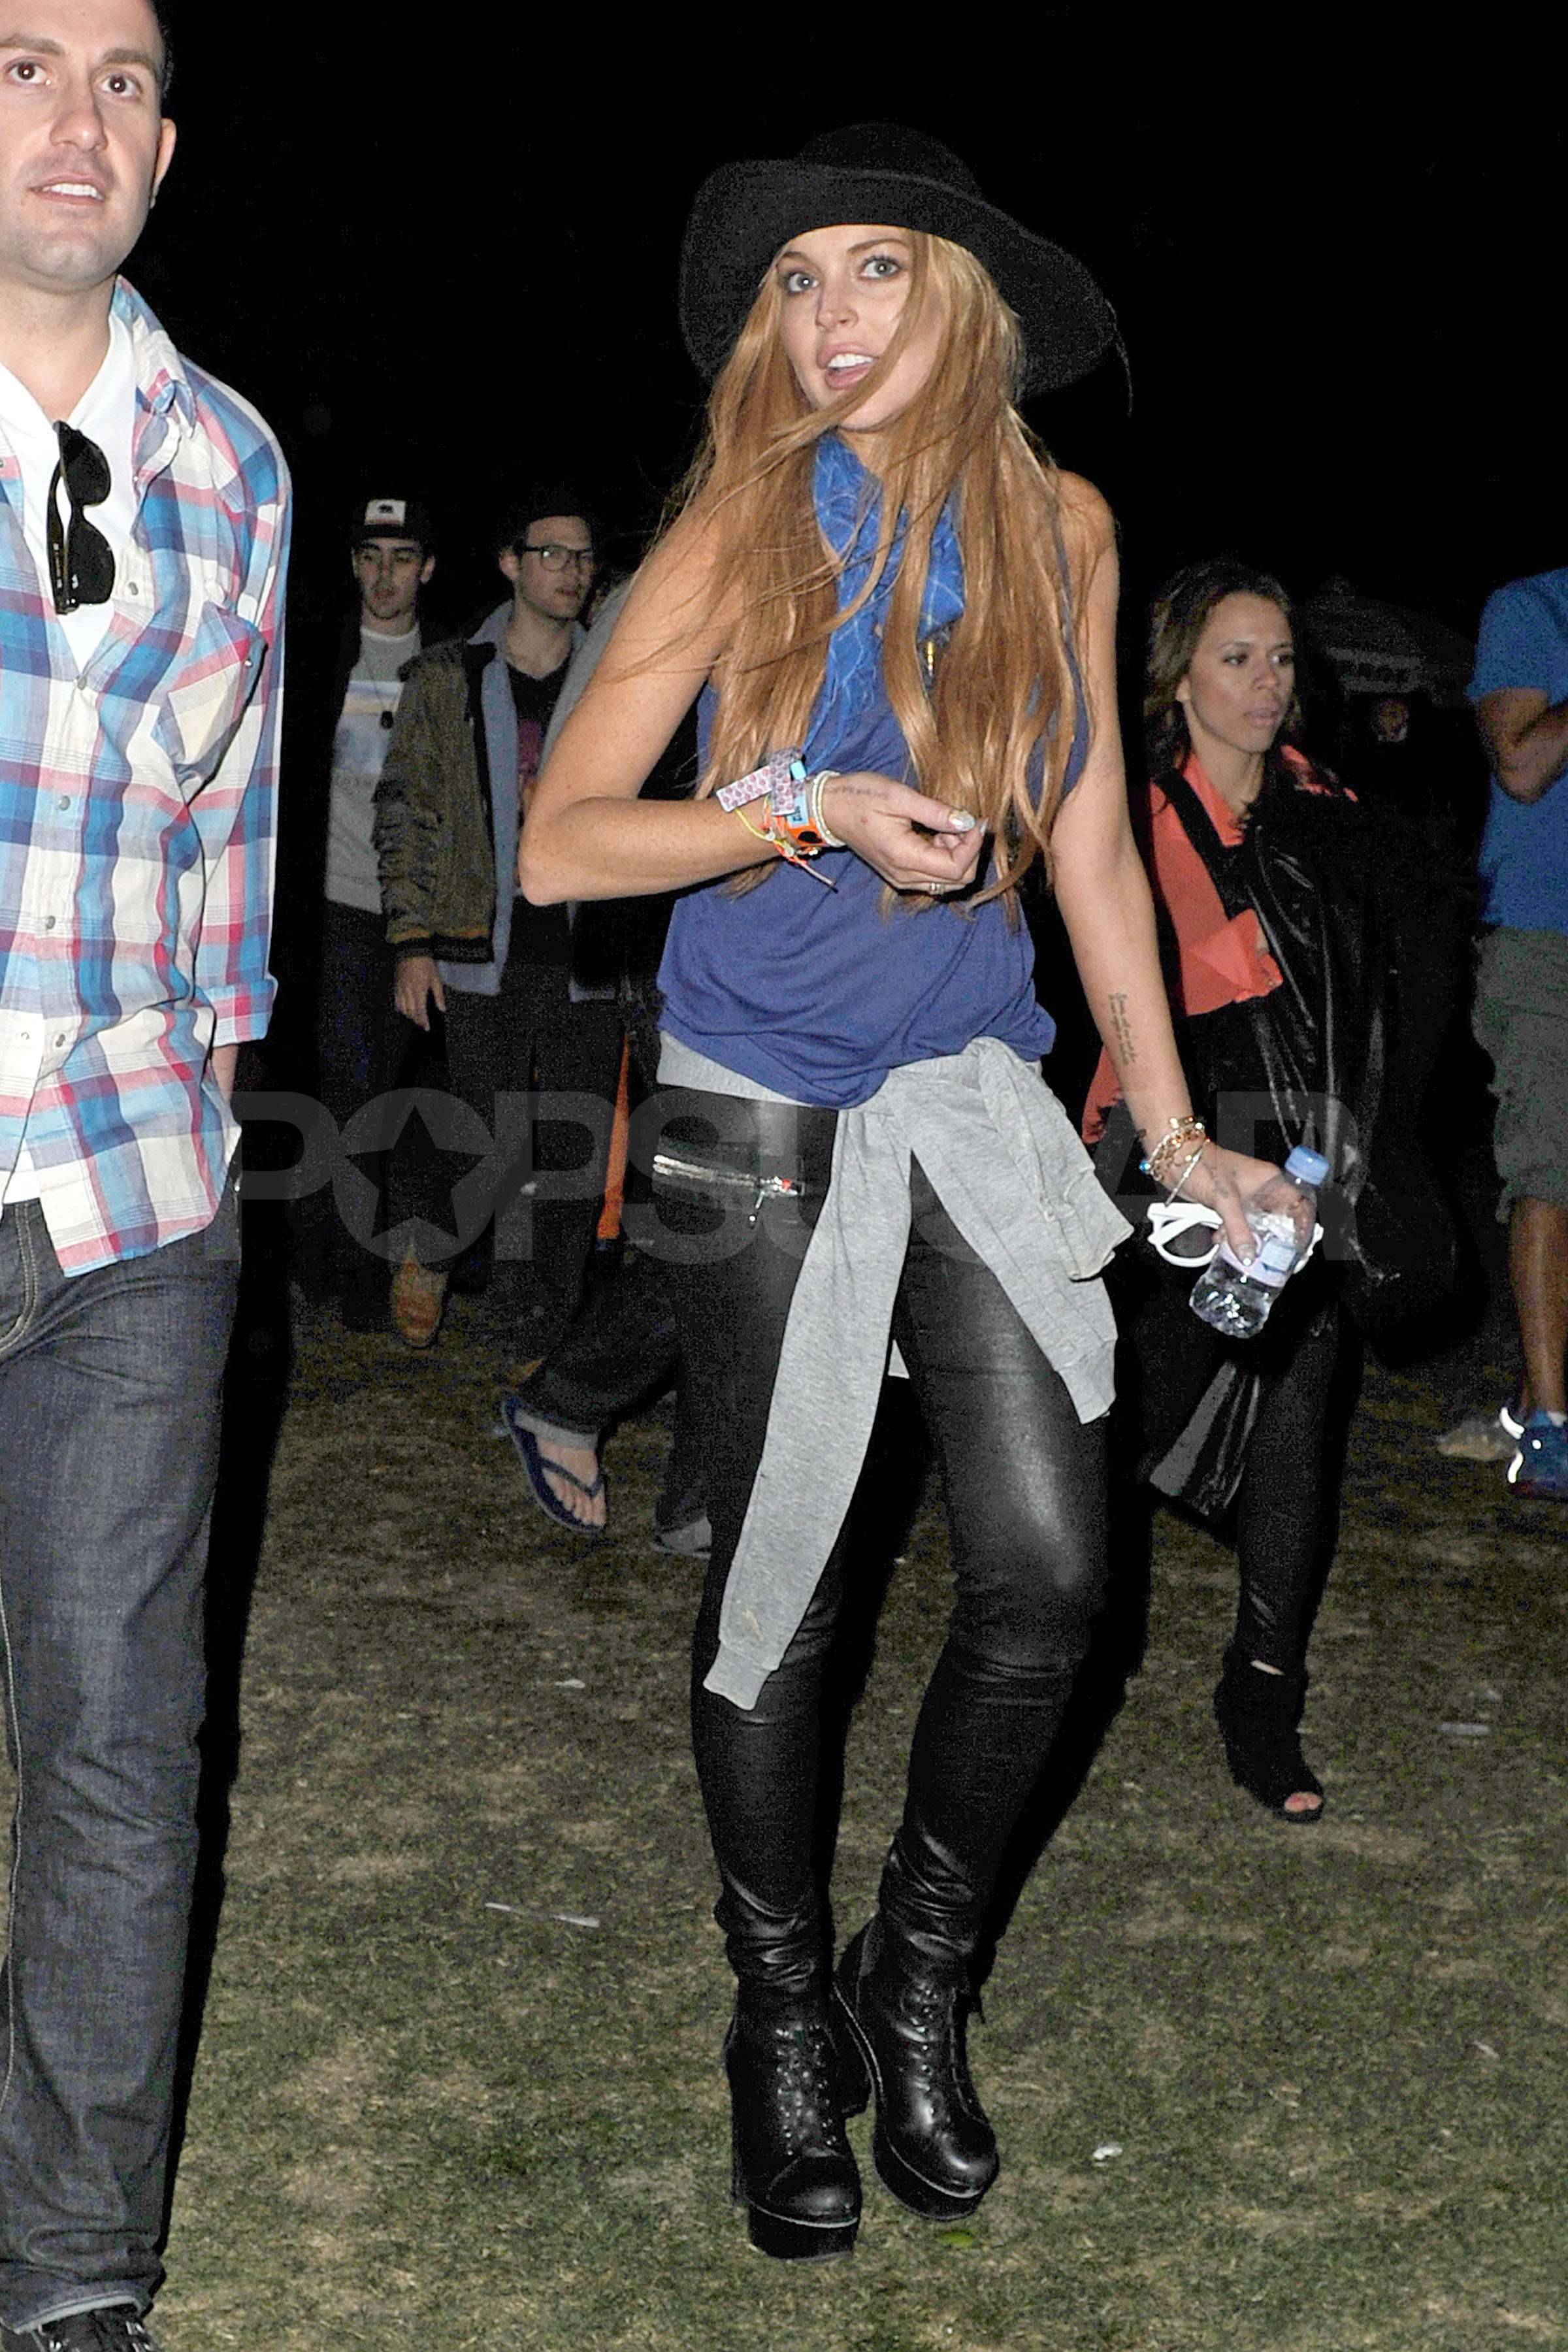 Lindsay Lohan let her hair down for the first night of festival fun.